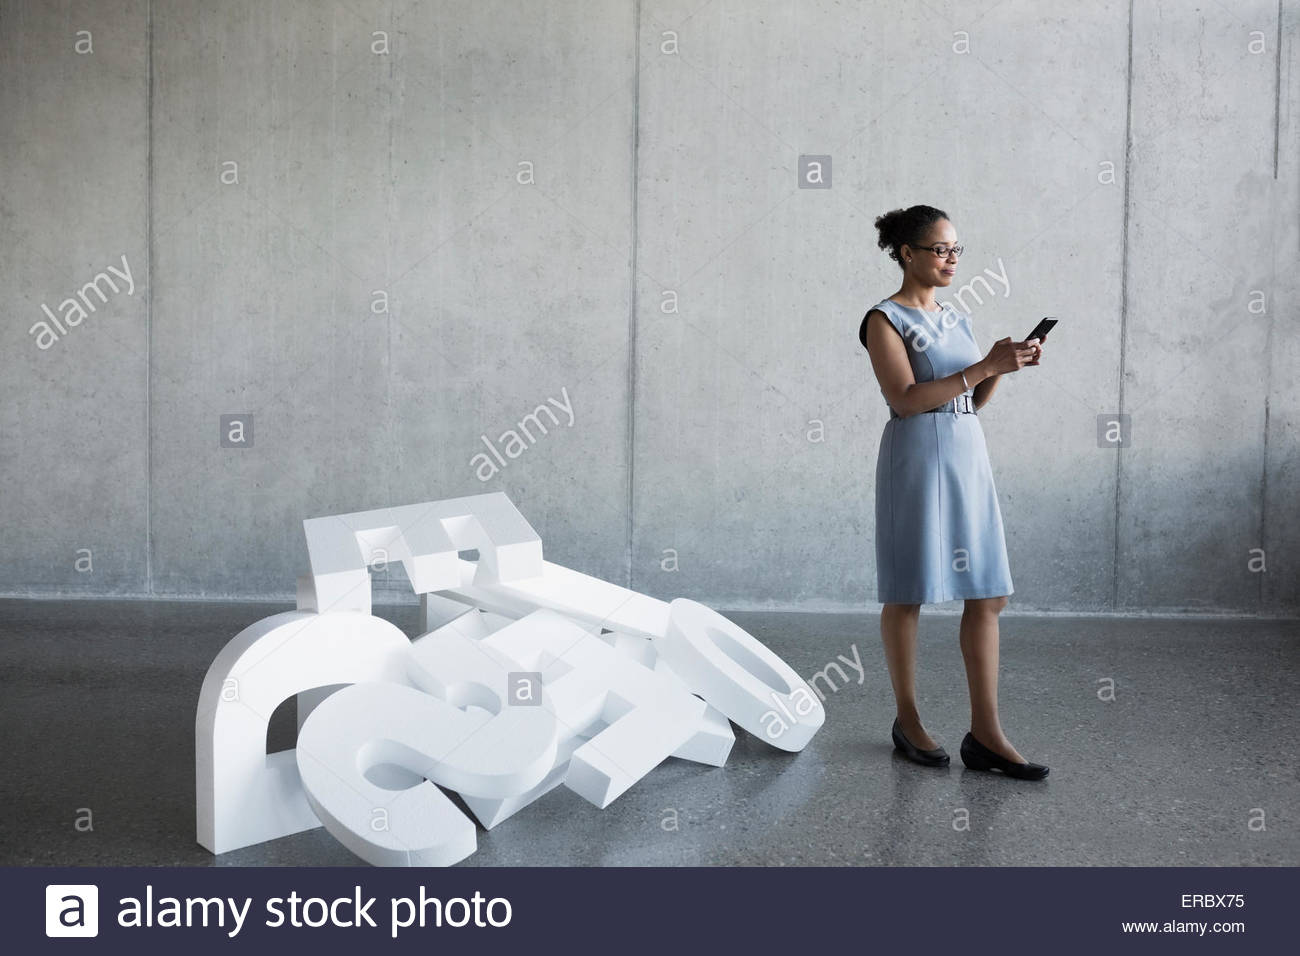 Businesswoman texting on cell phone near fallen letters - Stock Image